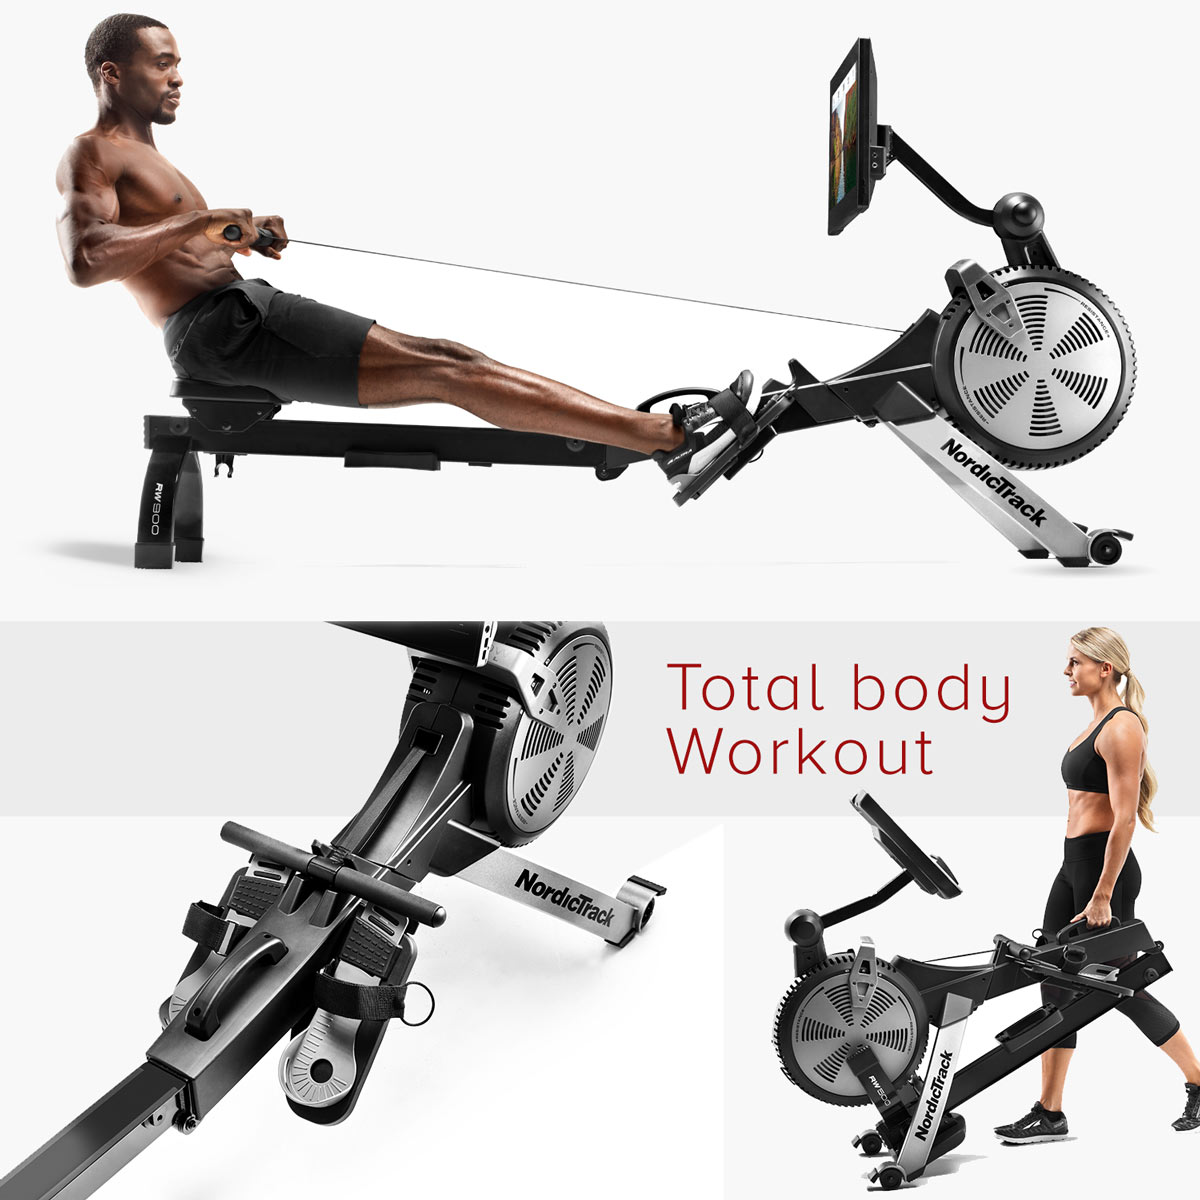 Indoor Rowing on the  RW900 or RW500  offers great variety during the off season. Rowing is a great workout because it is a full-body exercise that can help build and tone muscles, improve cardiovascular function and increased stamina. Rowing is also low-impact and easy on joints.